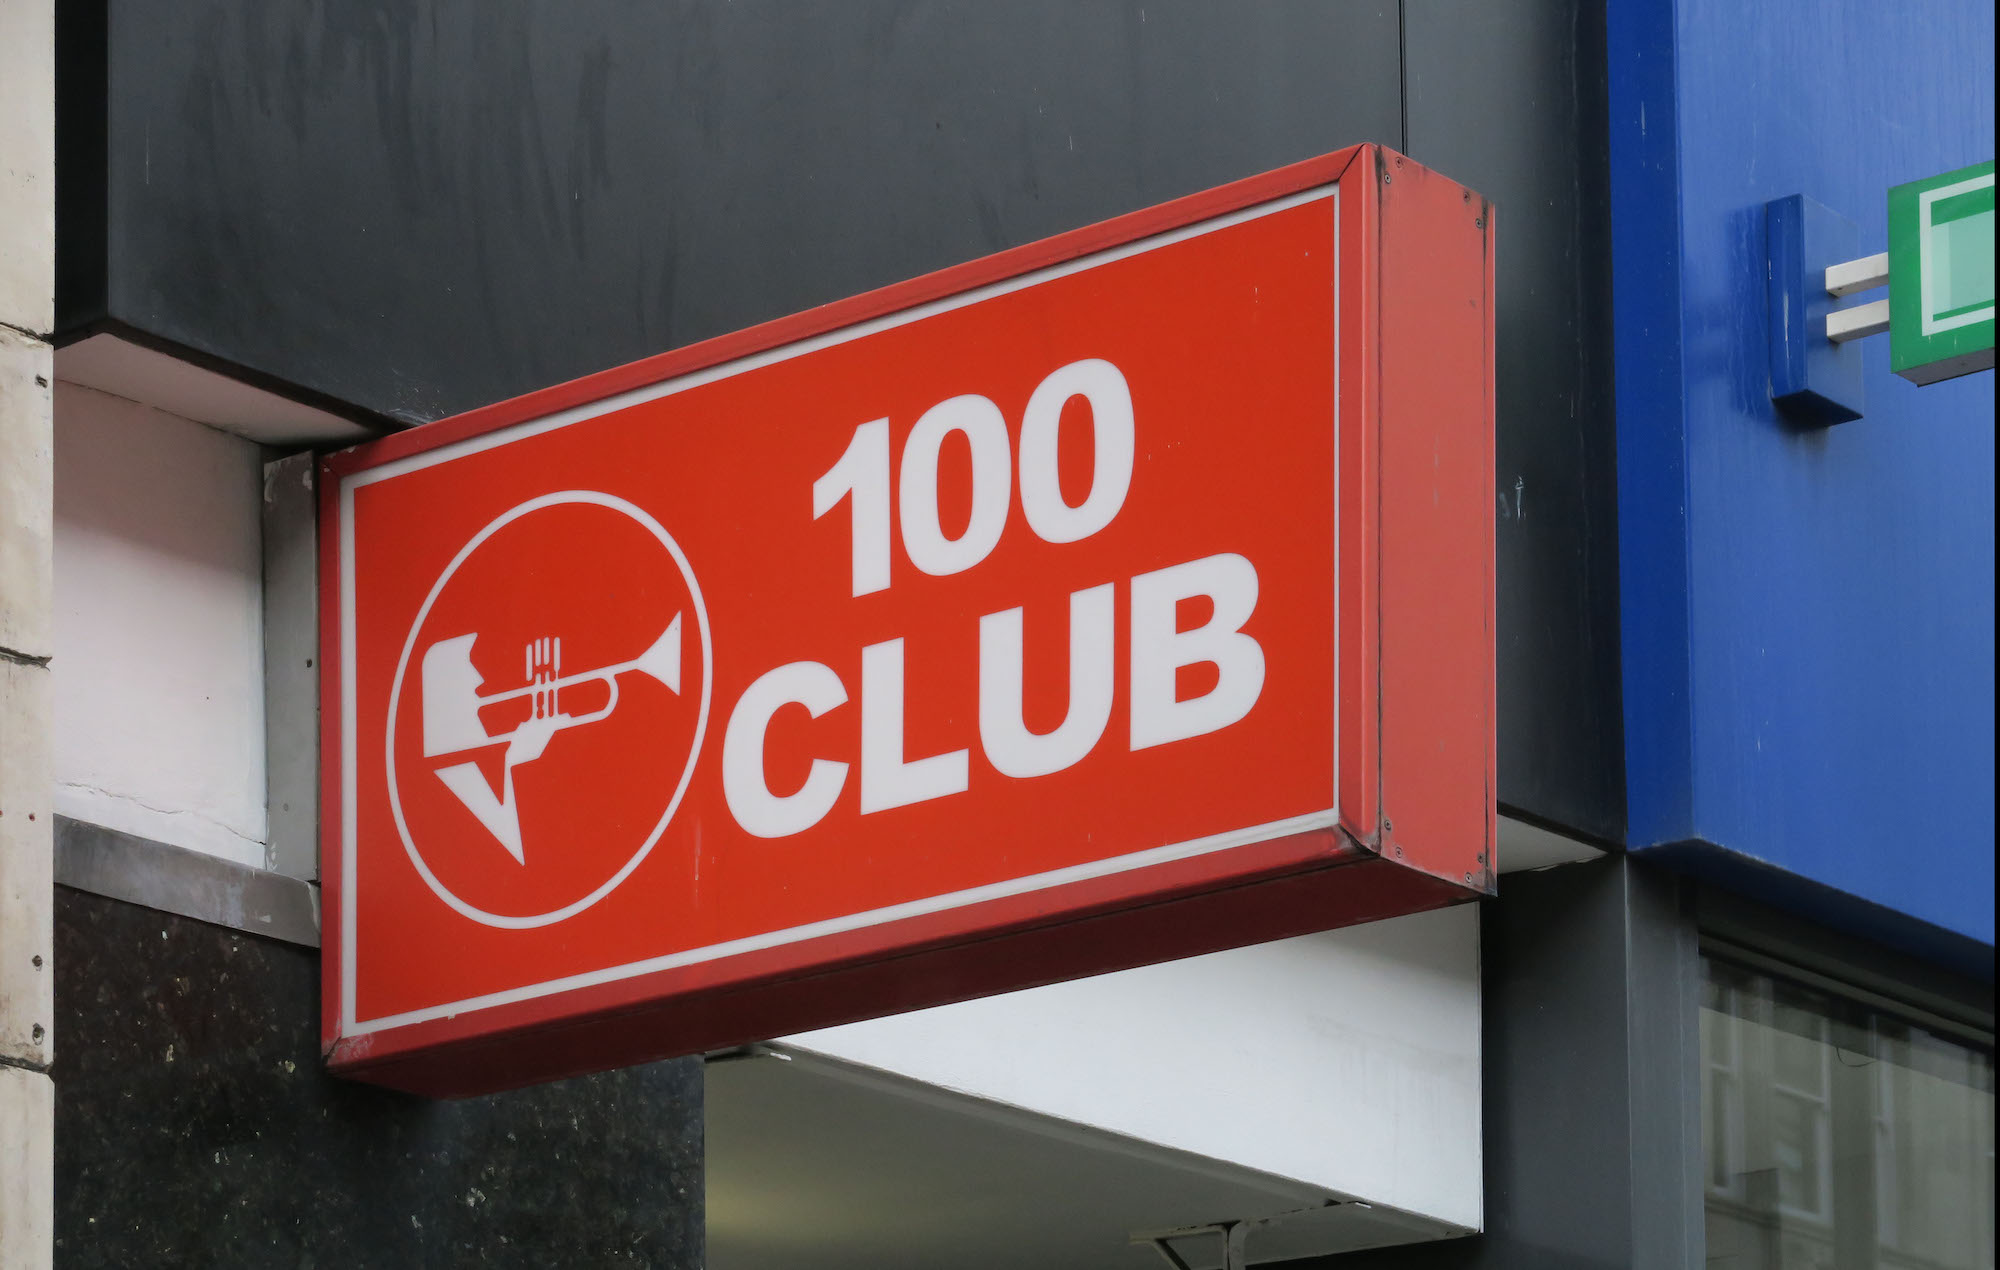 London's 100 Club will no longer share stage times